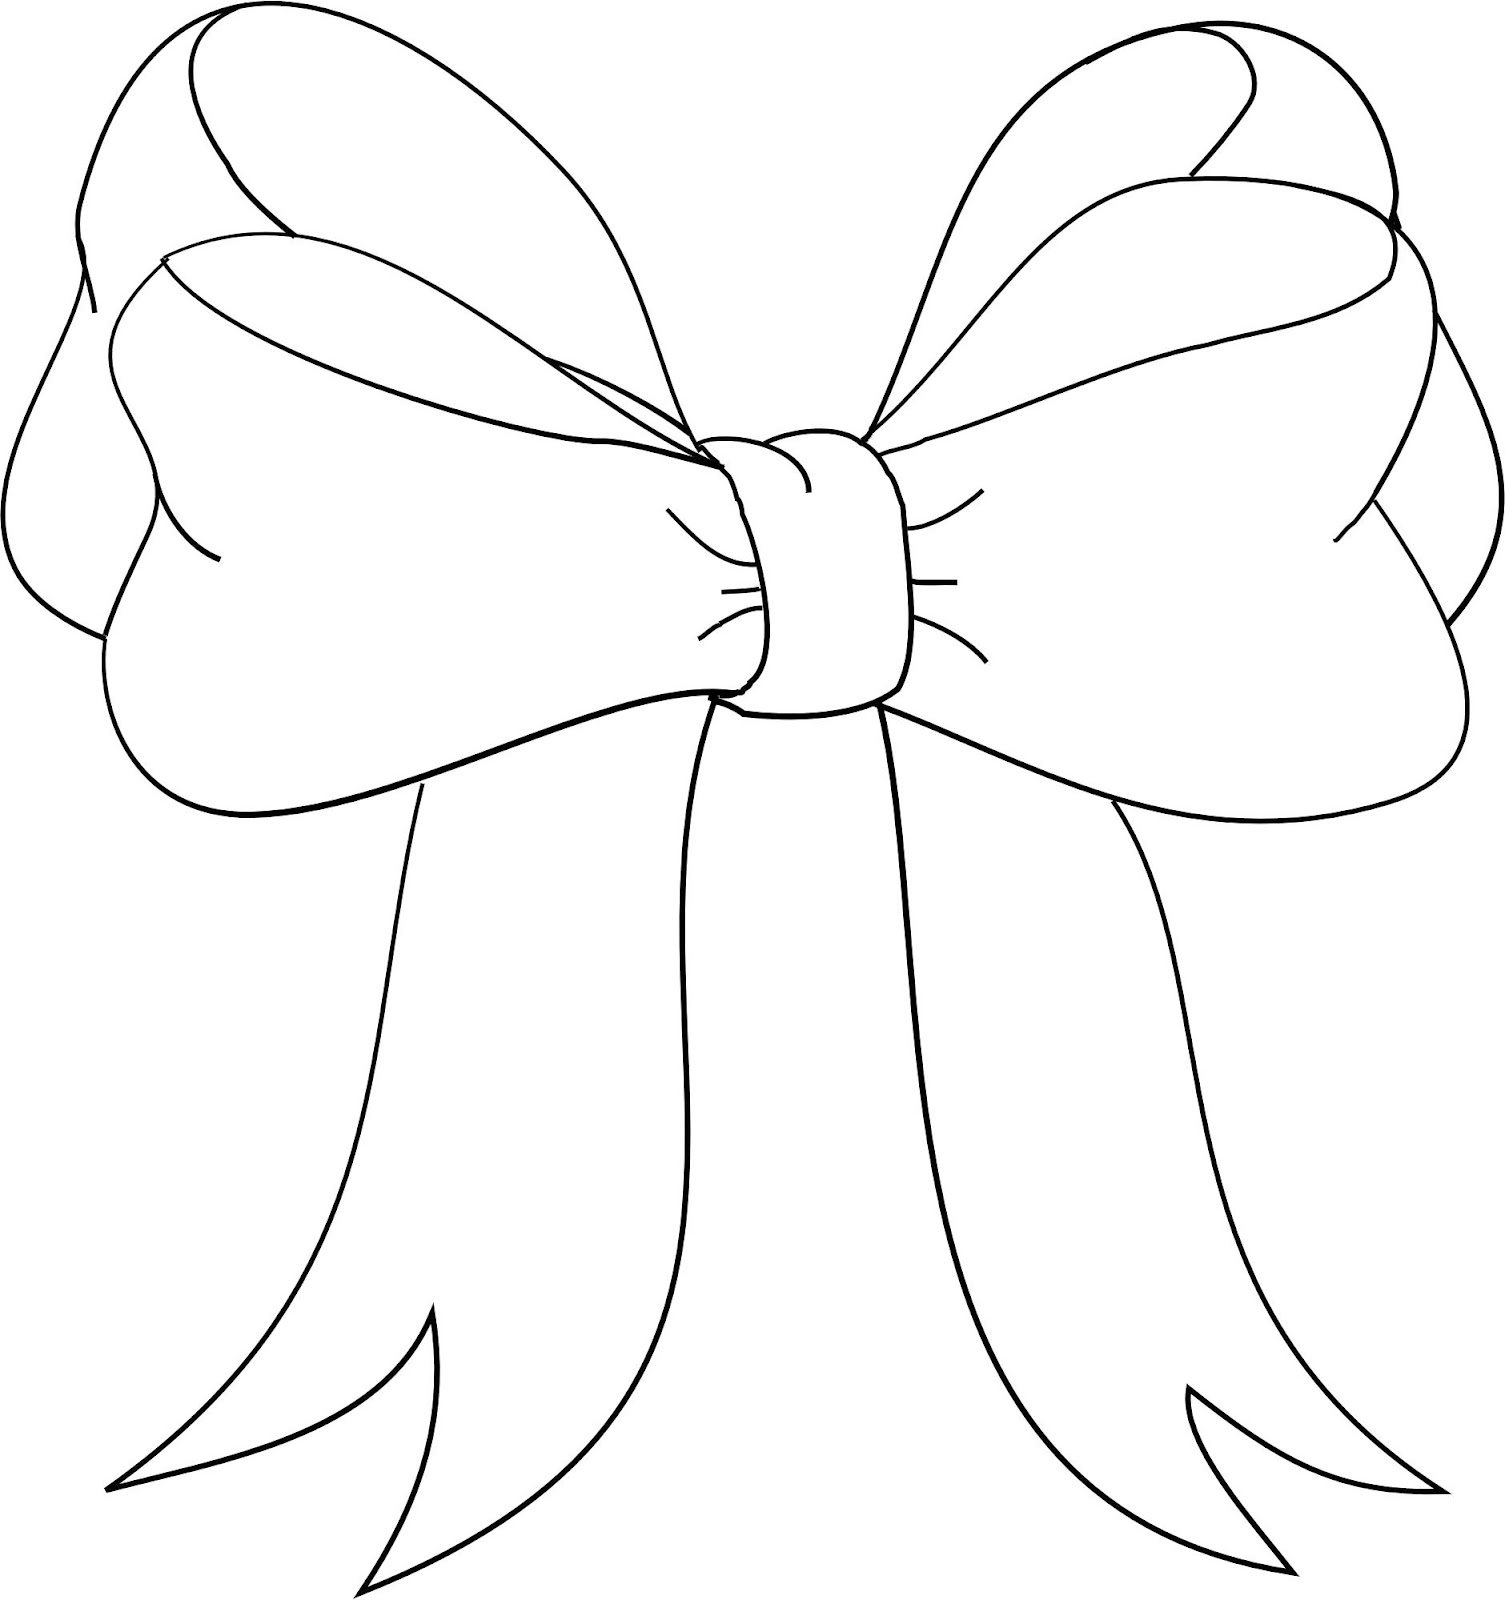 how to draw a bow how to draw a bow in 5 steps easy drawing tutorial draw how a to bow